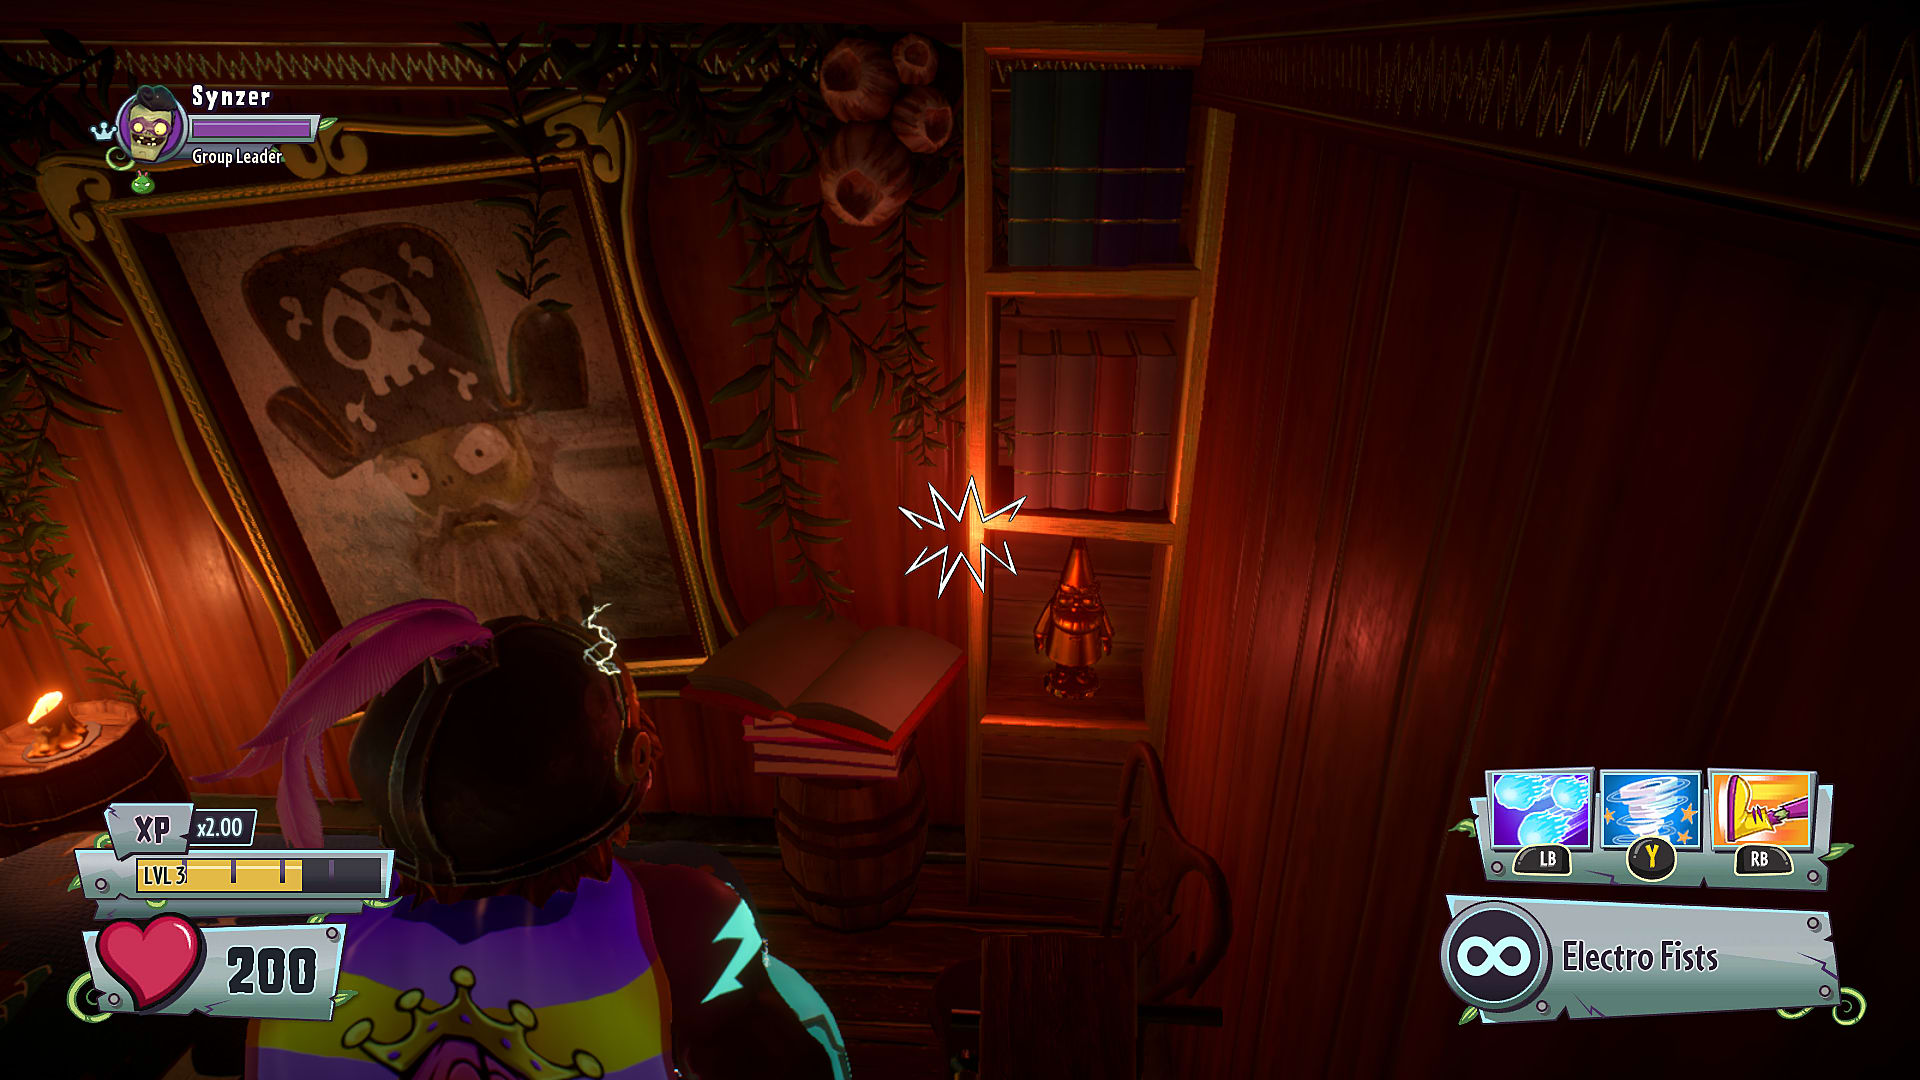 Plants vs Zombies Garden Warfare 2: Find Secret Gnome Room